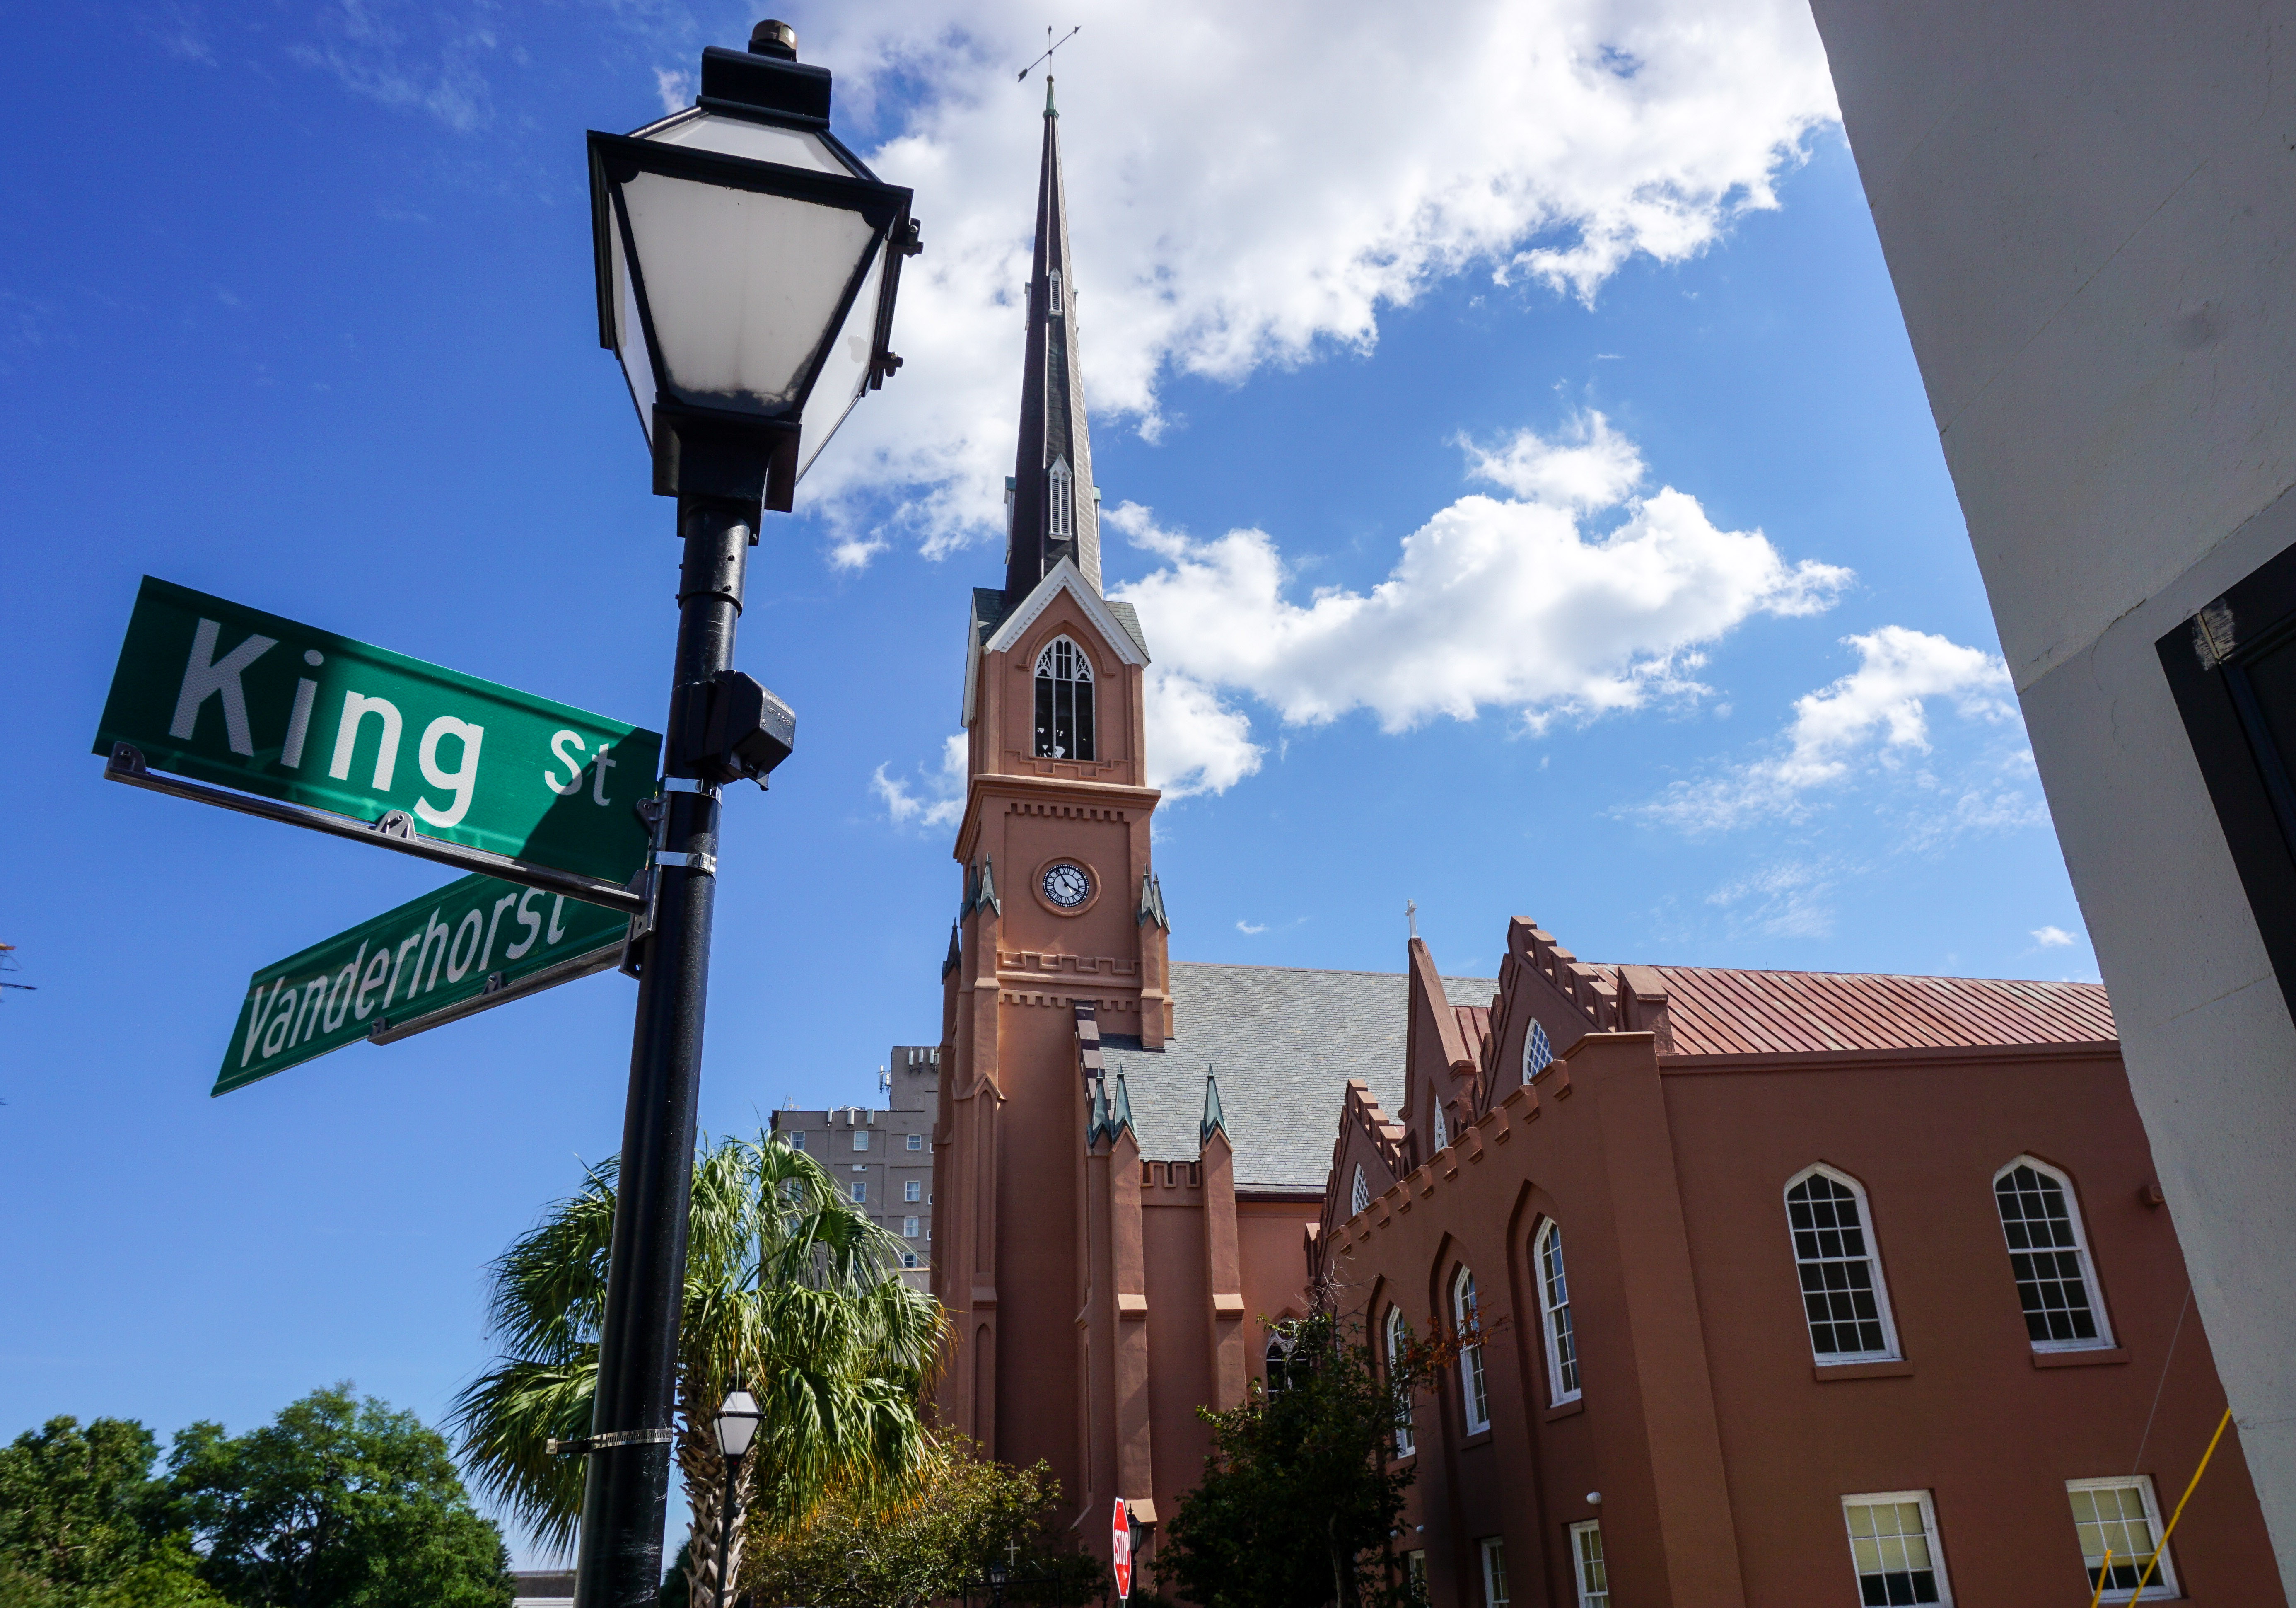 10 best things to do in charleston sc discovering your for Fun things to do in charleston sc